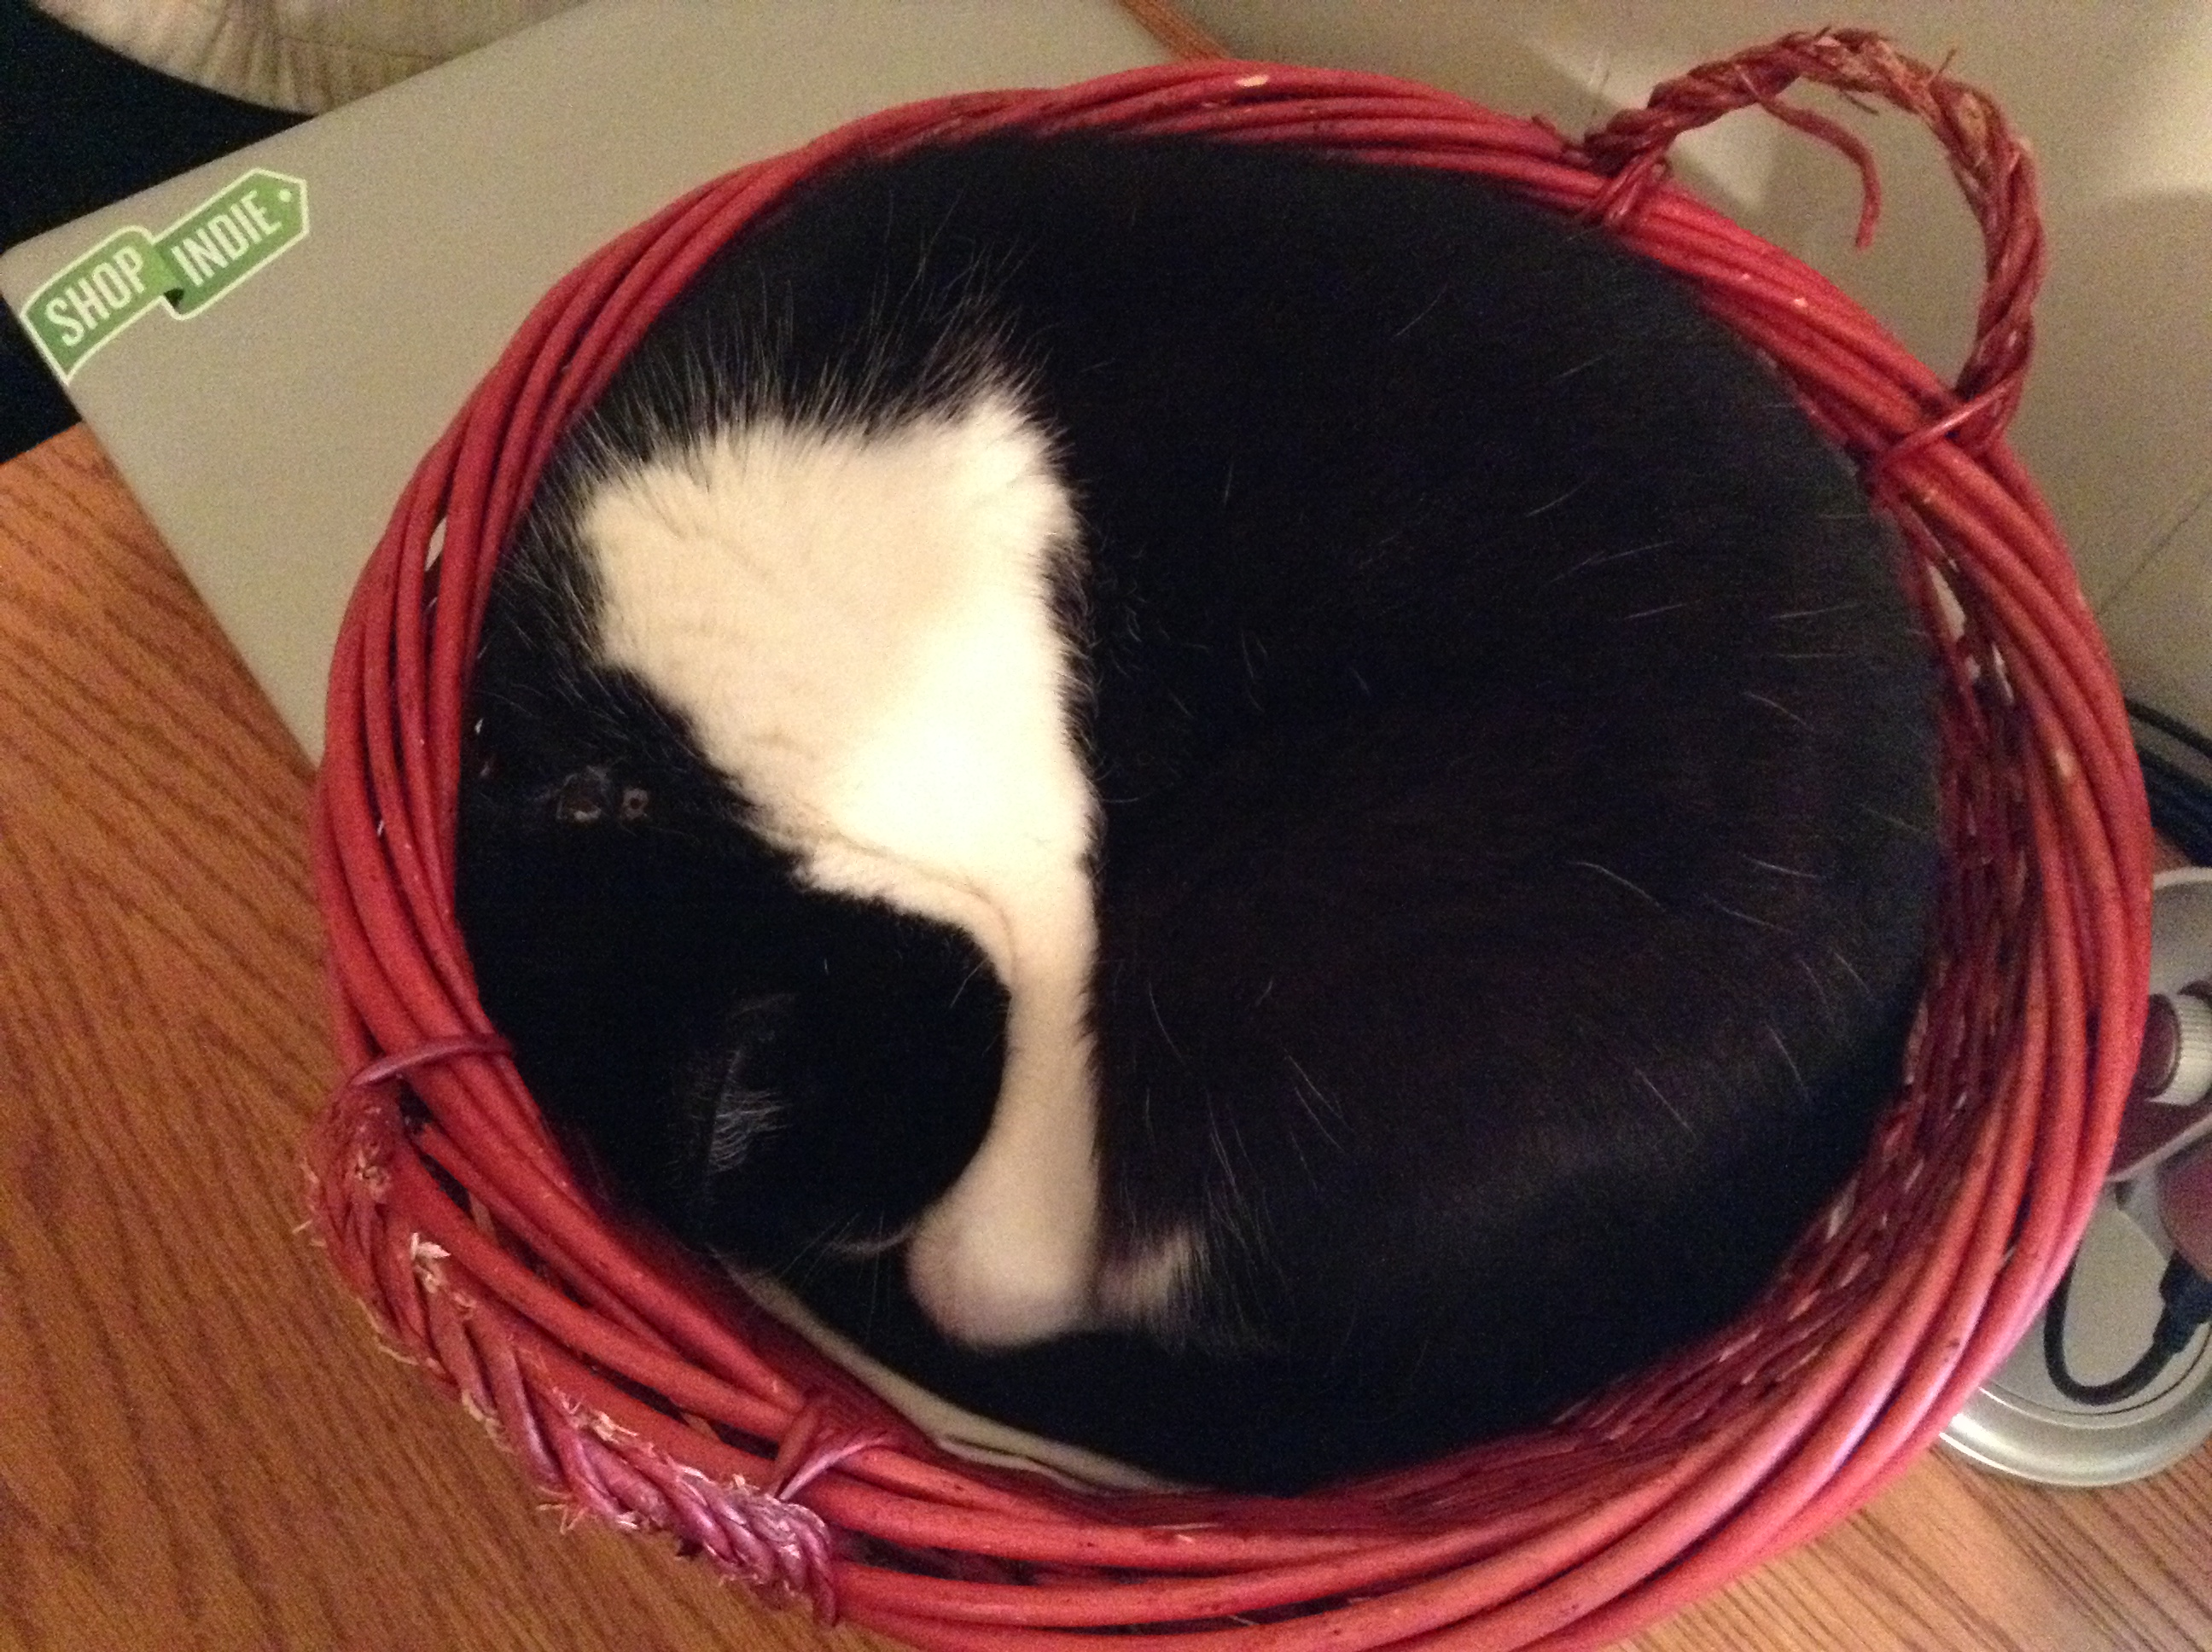 My cat Marley curled up in his favorite basket